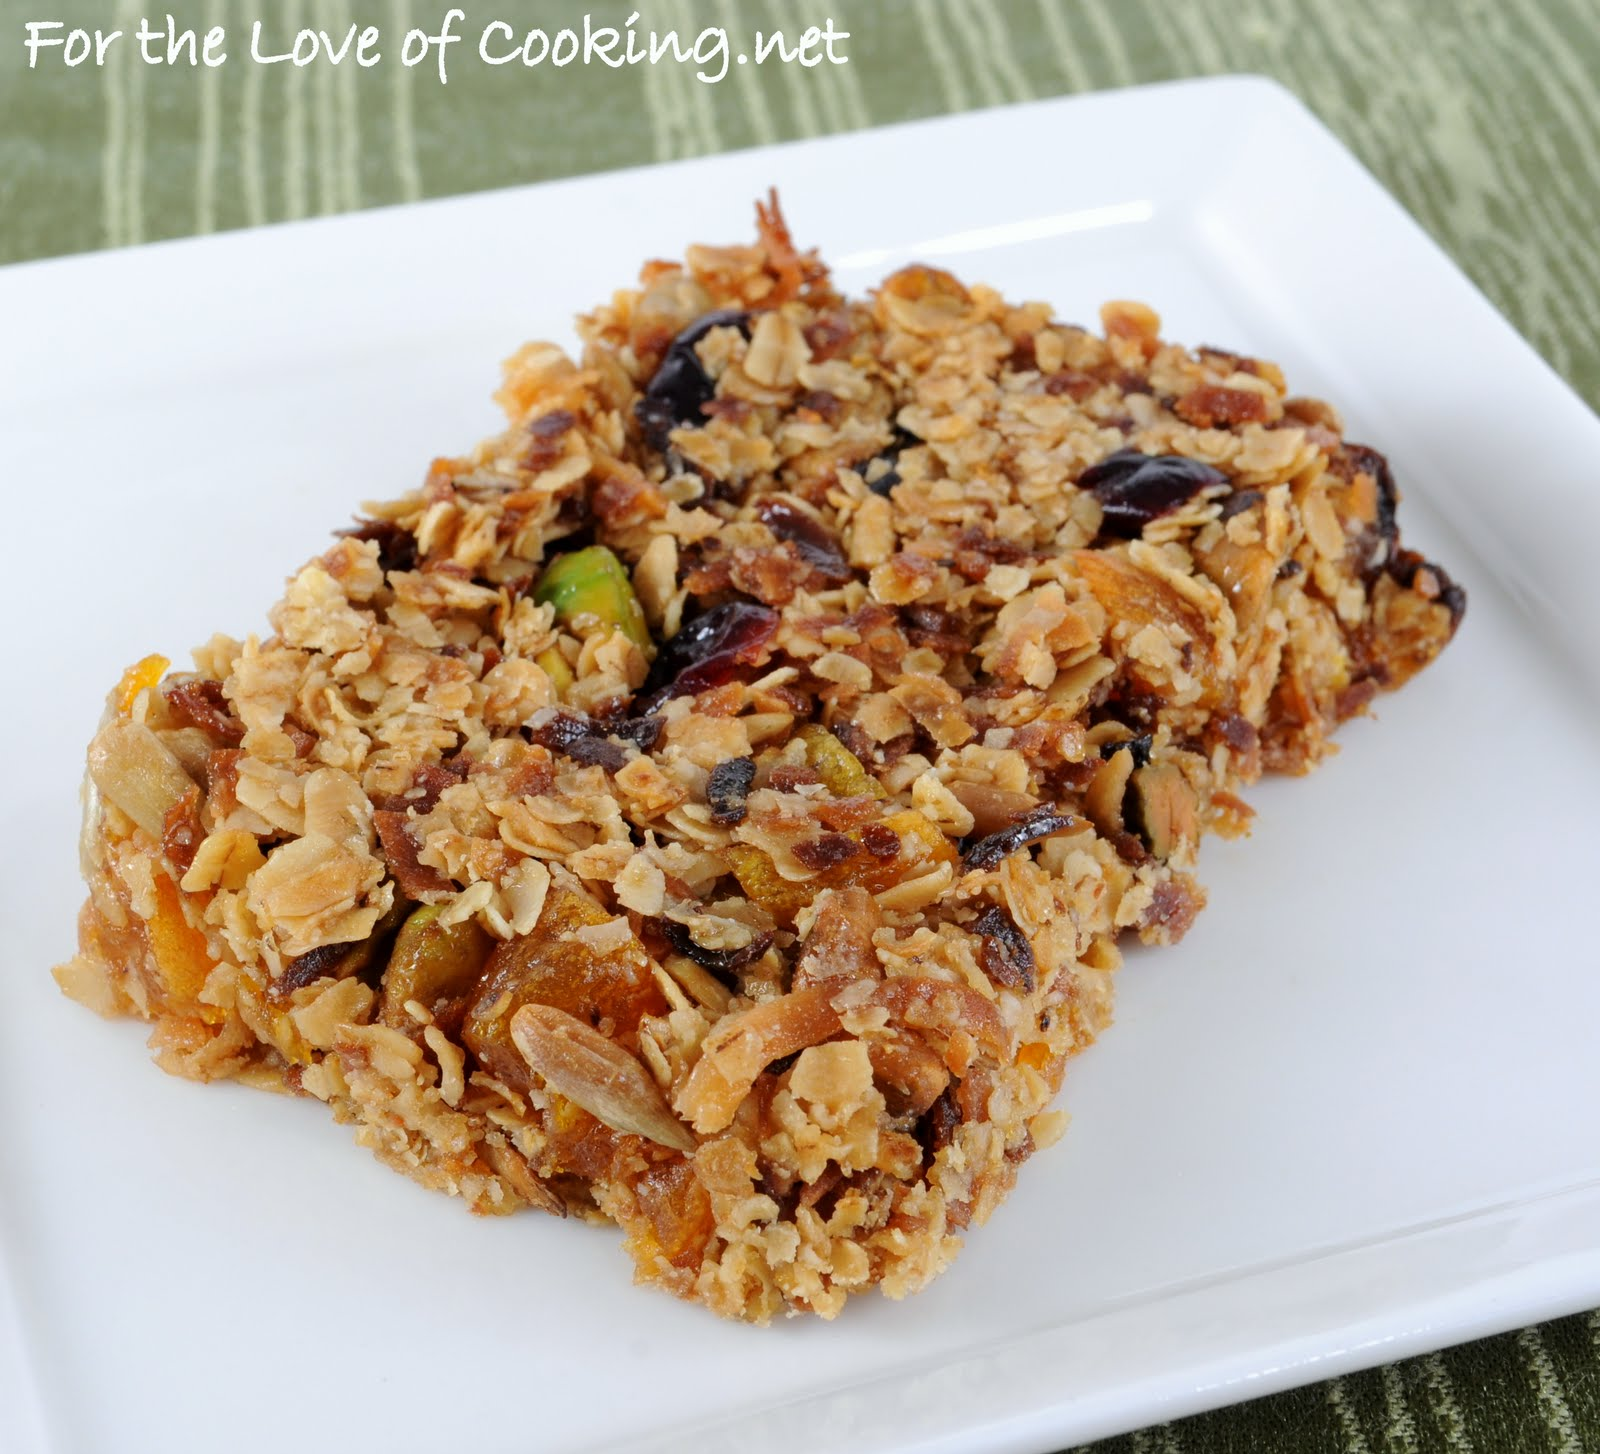 Sweet and Salty Homemade Granola Bars | For the Love of ...